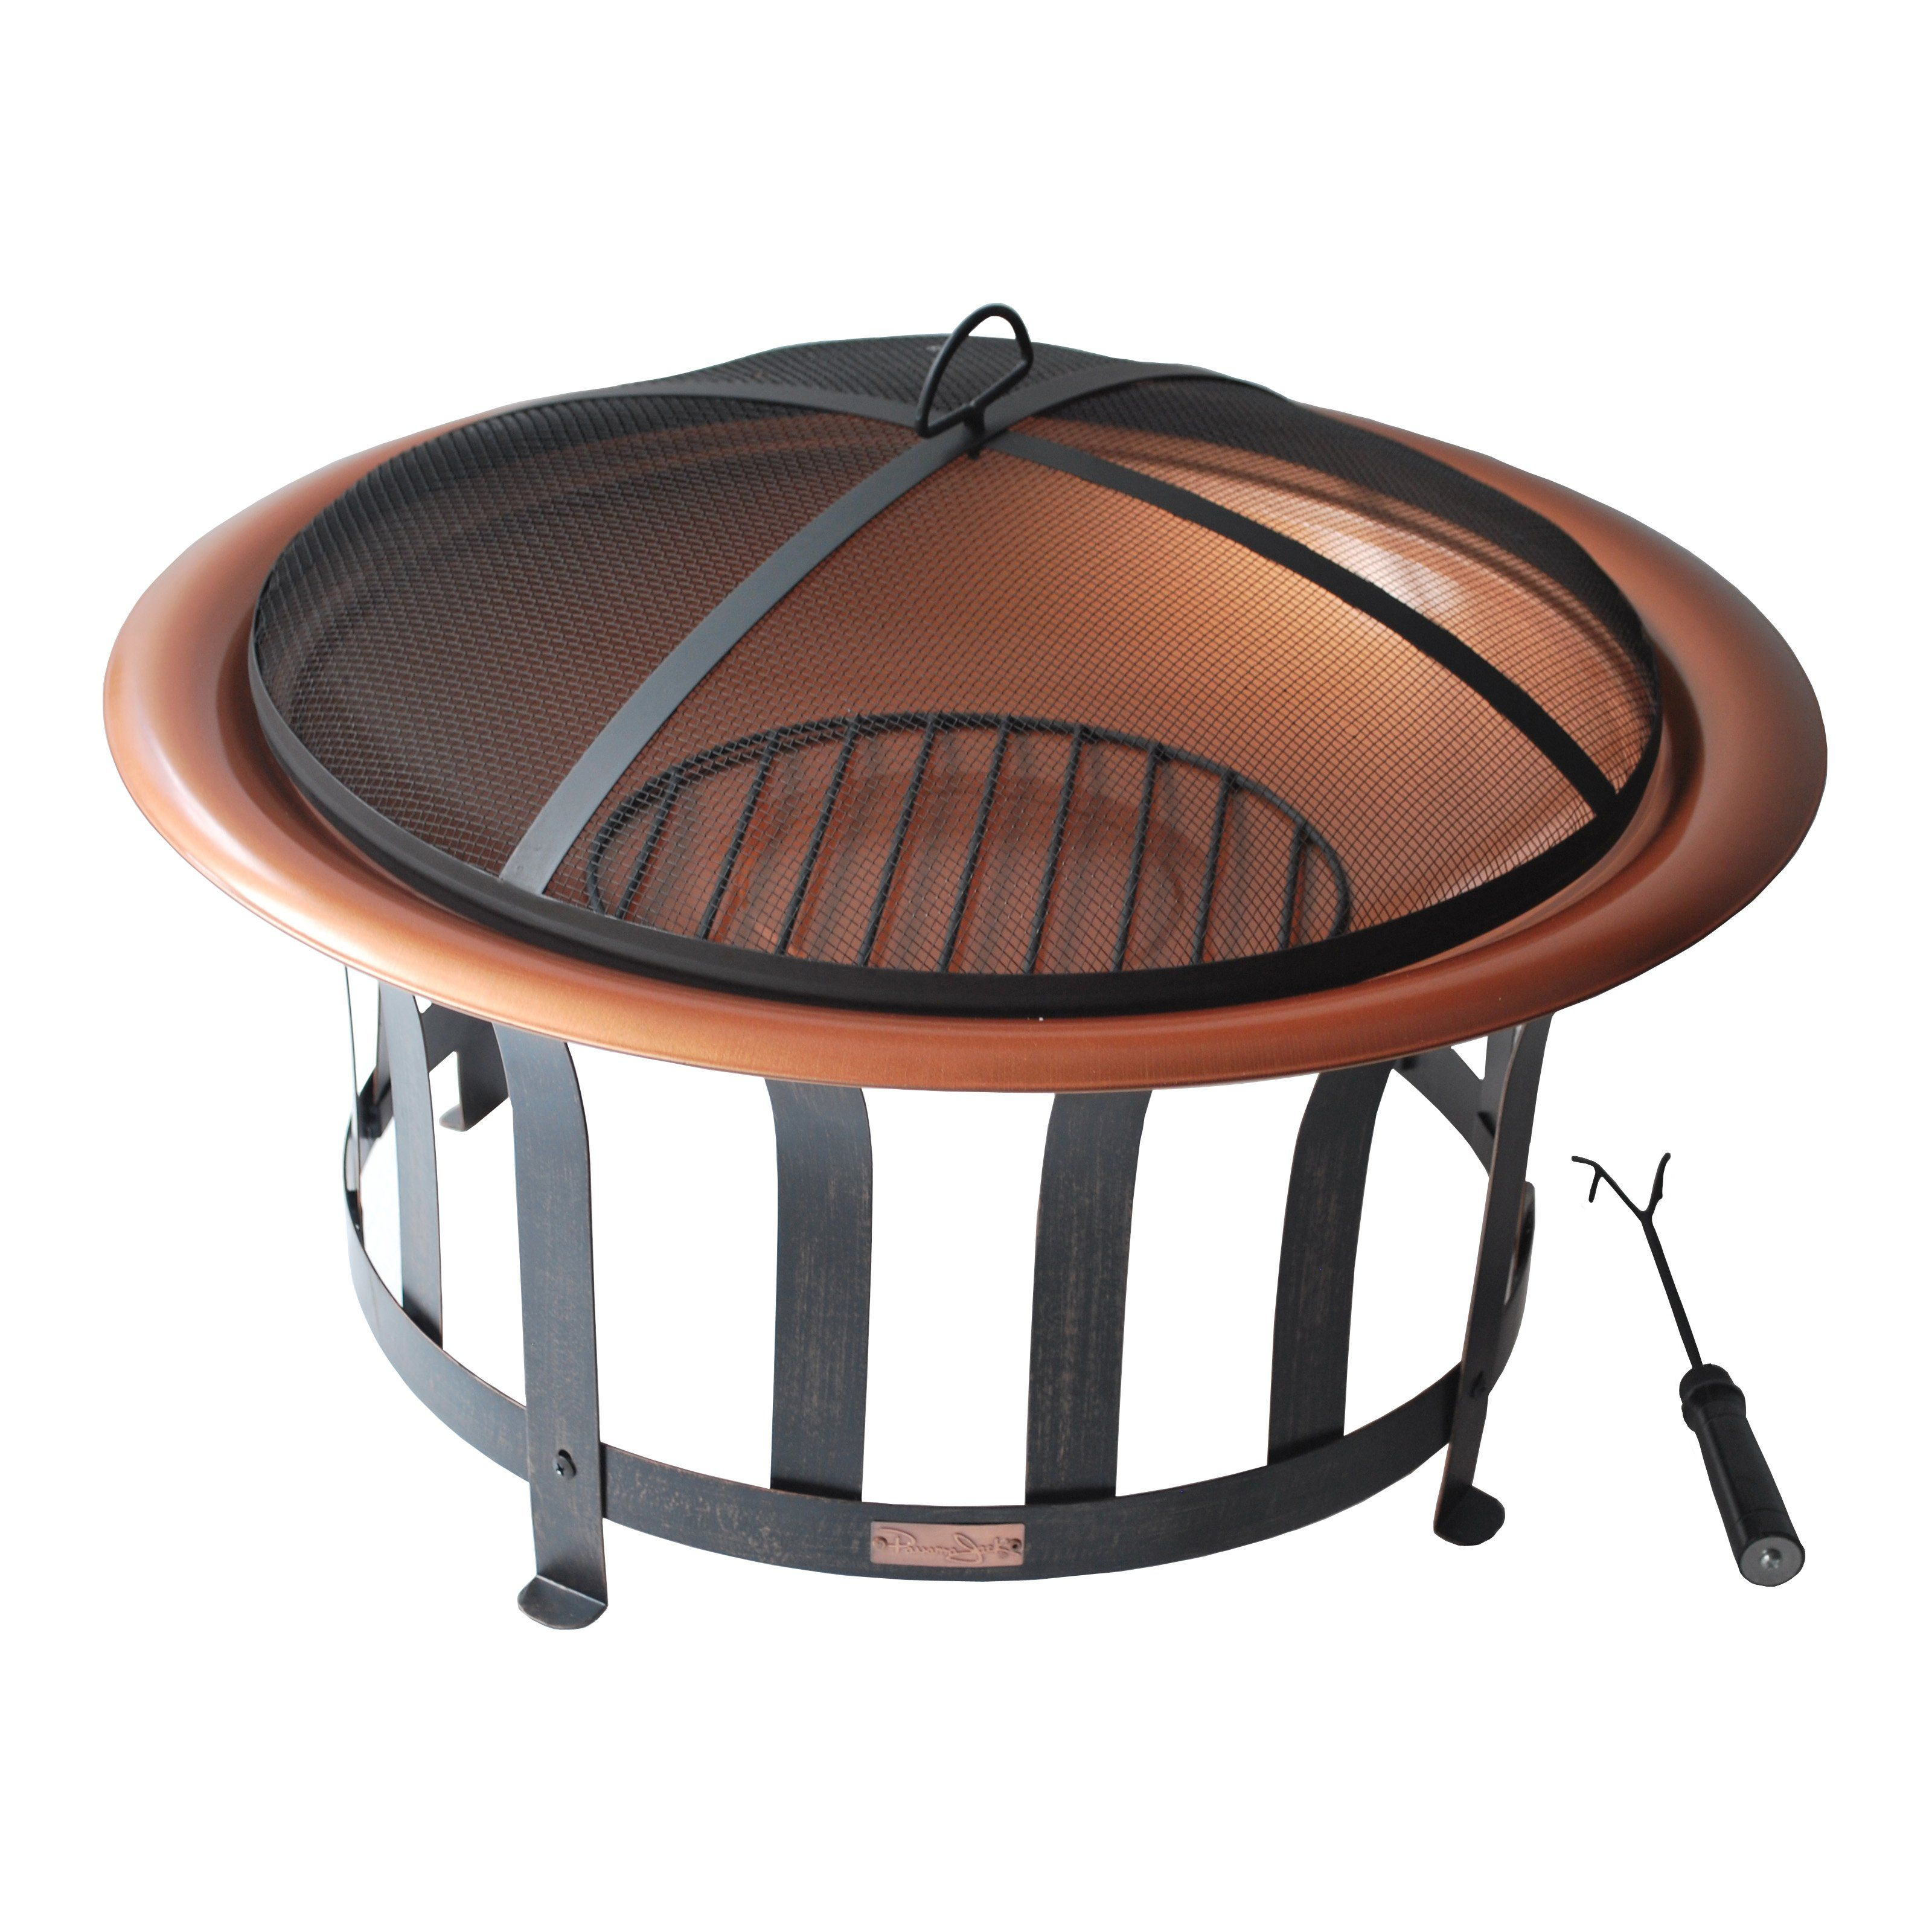 Have To Have It Panama Jack Round 30 In Copper Fire Pit With Metal Base Black 210 00 Fire Pit Copper Fire Pit Portable Fire Pits